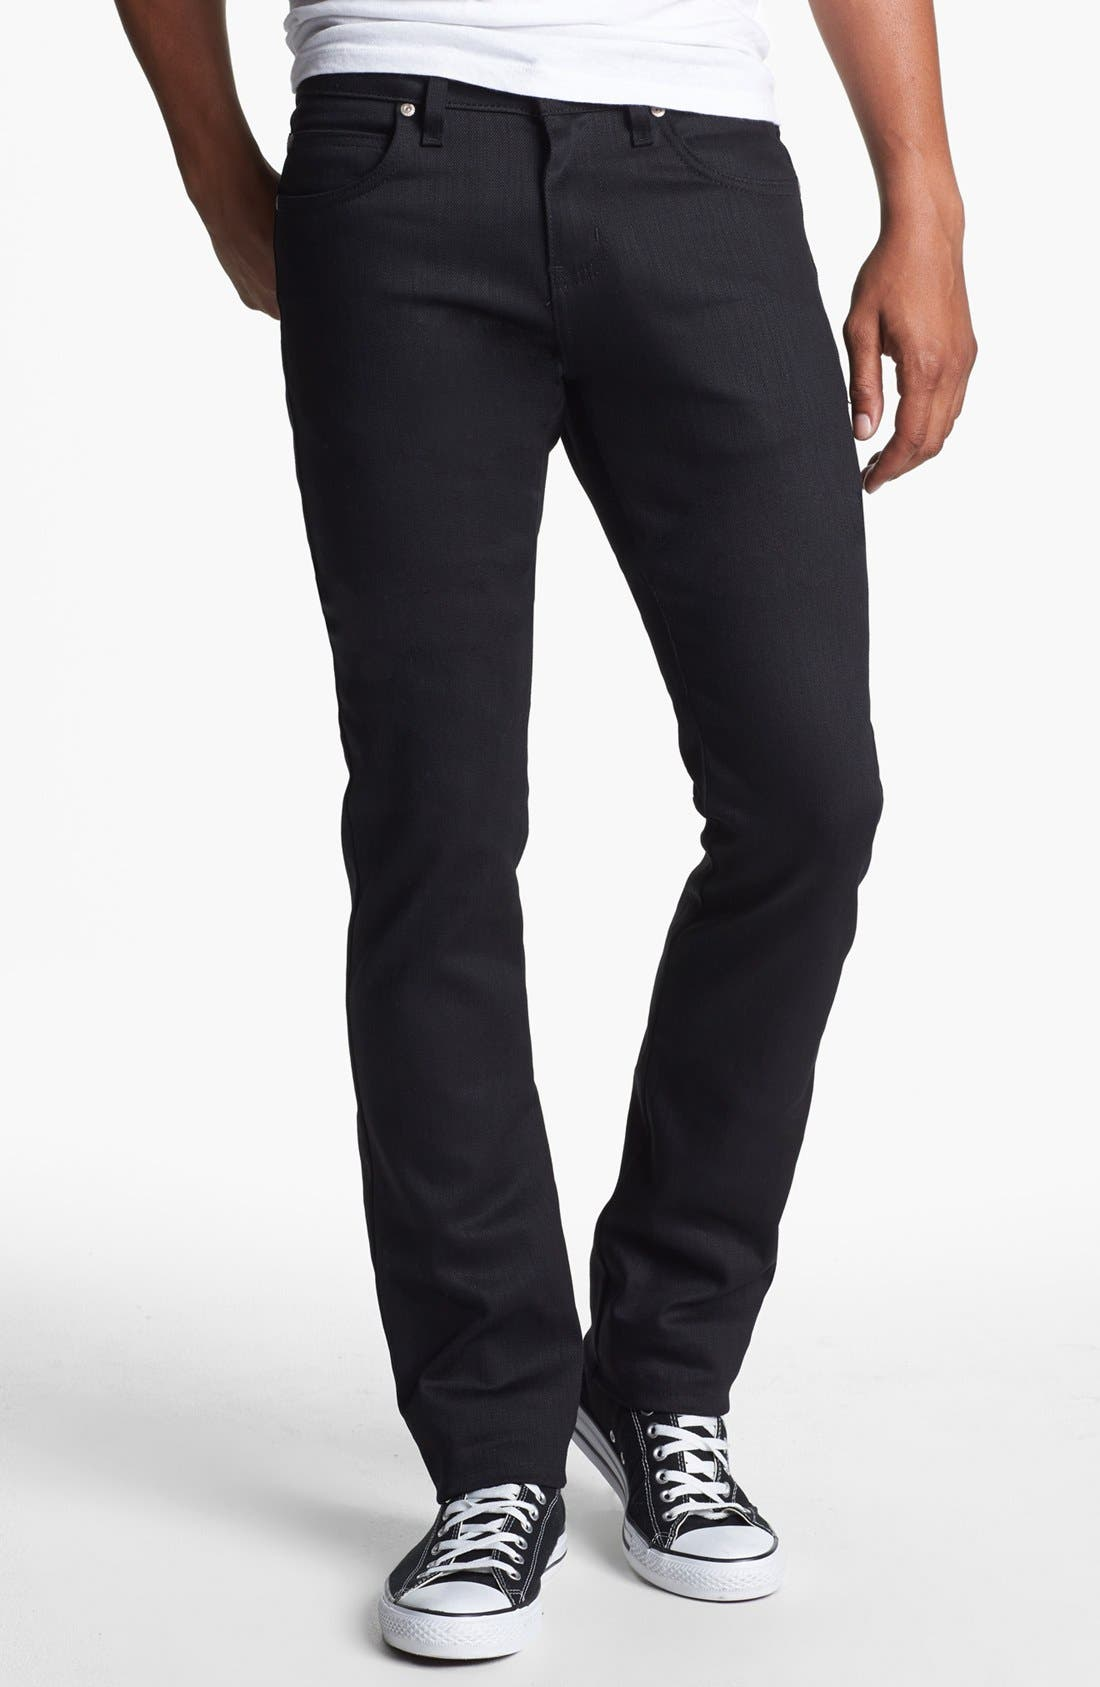 Skinny Guy Skinny Fit Jeans,                             Main thumbnail 1, color,                             BLACK POWER STRETCH